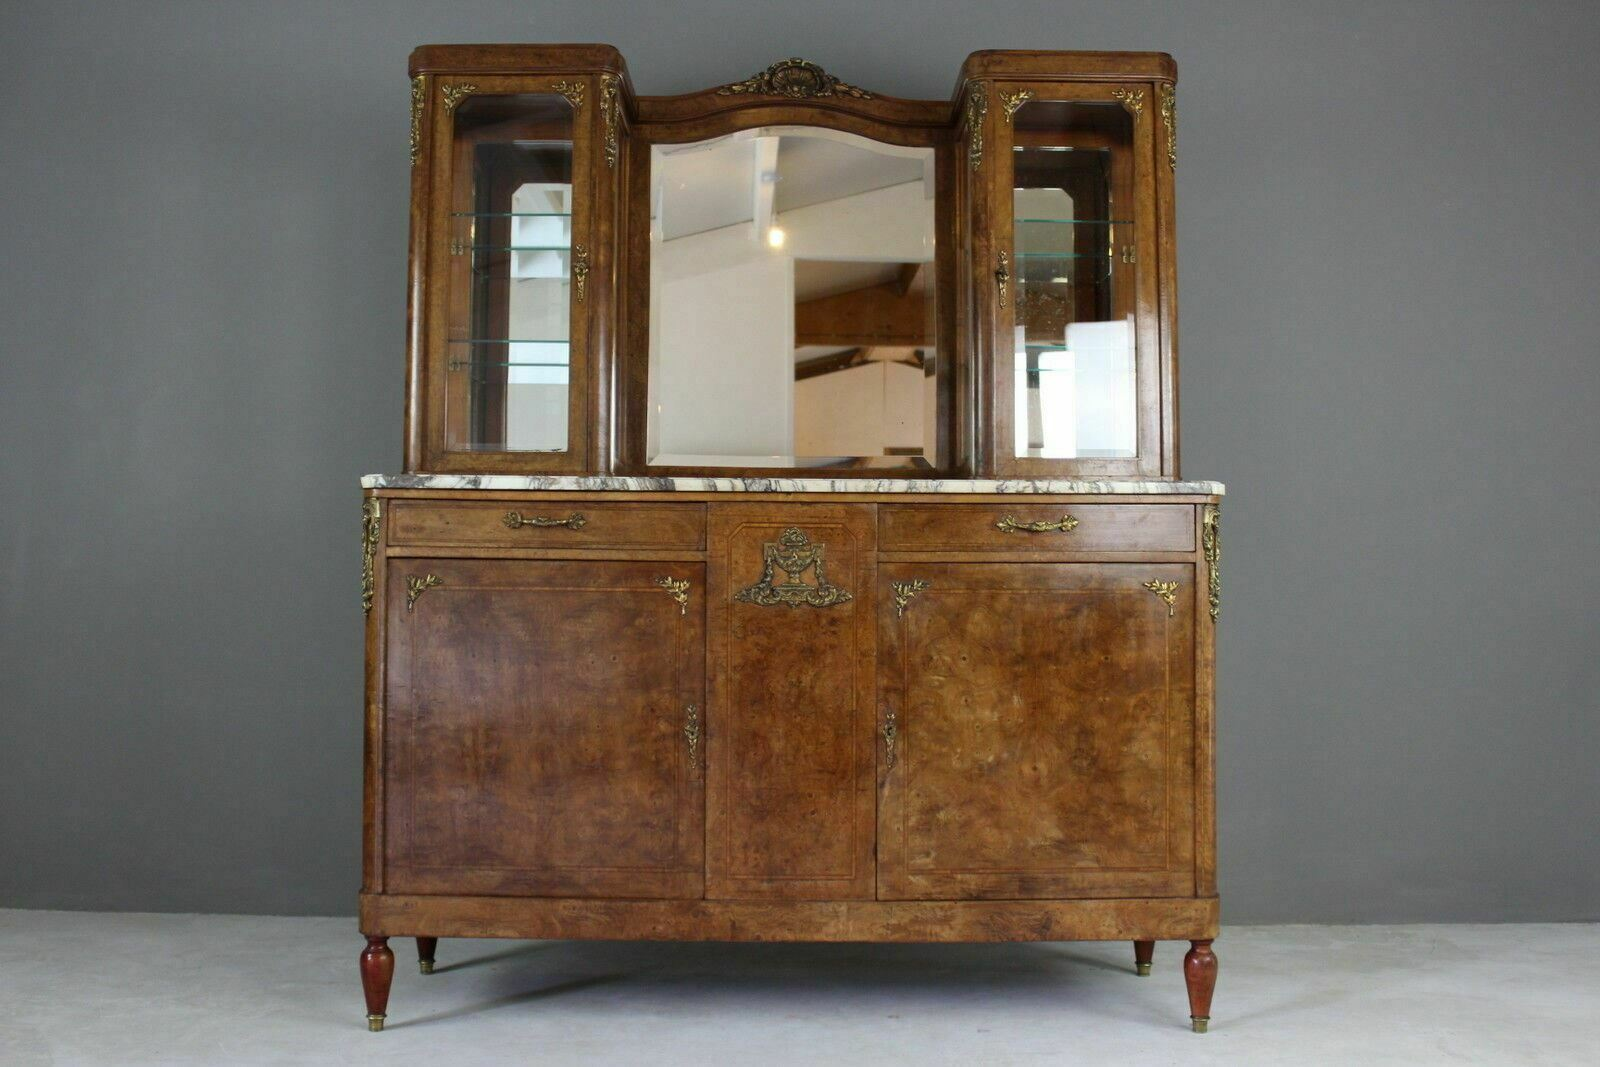 Sideboard Vitrine Antique French Burr Walnut Marble Vitrine Display Cabinet Sideboard Dresser